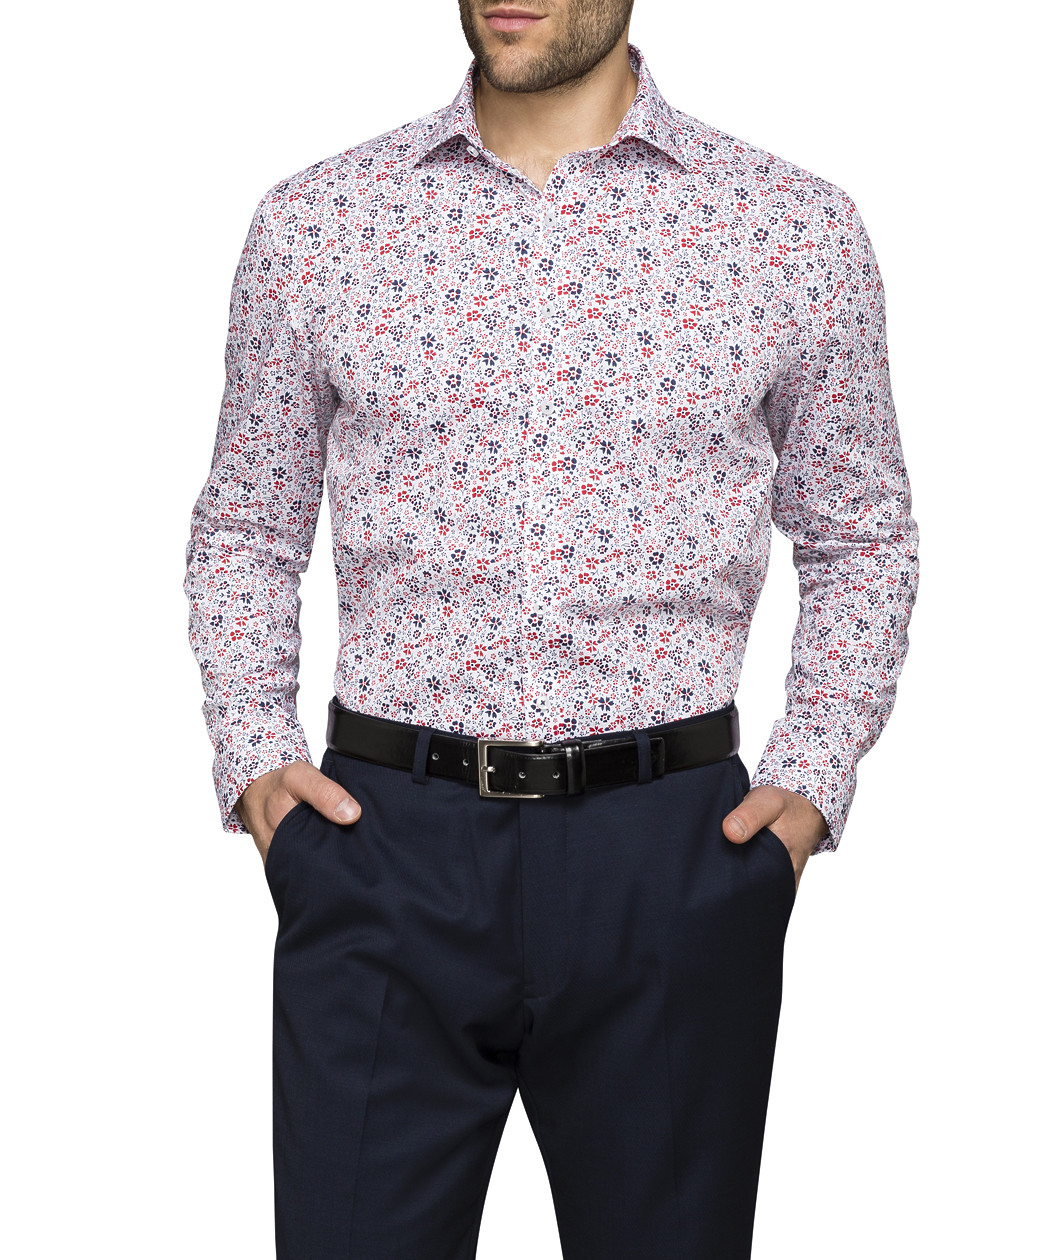 Style Shirts is one of Australia's leading providers of men's business, casual, and formal shirts. Our aim is to provide Australian men with the most stylish and highest quality garments on the market.